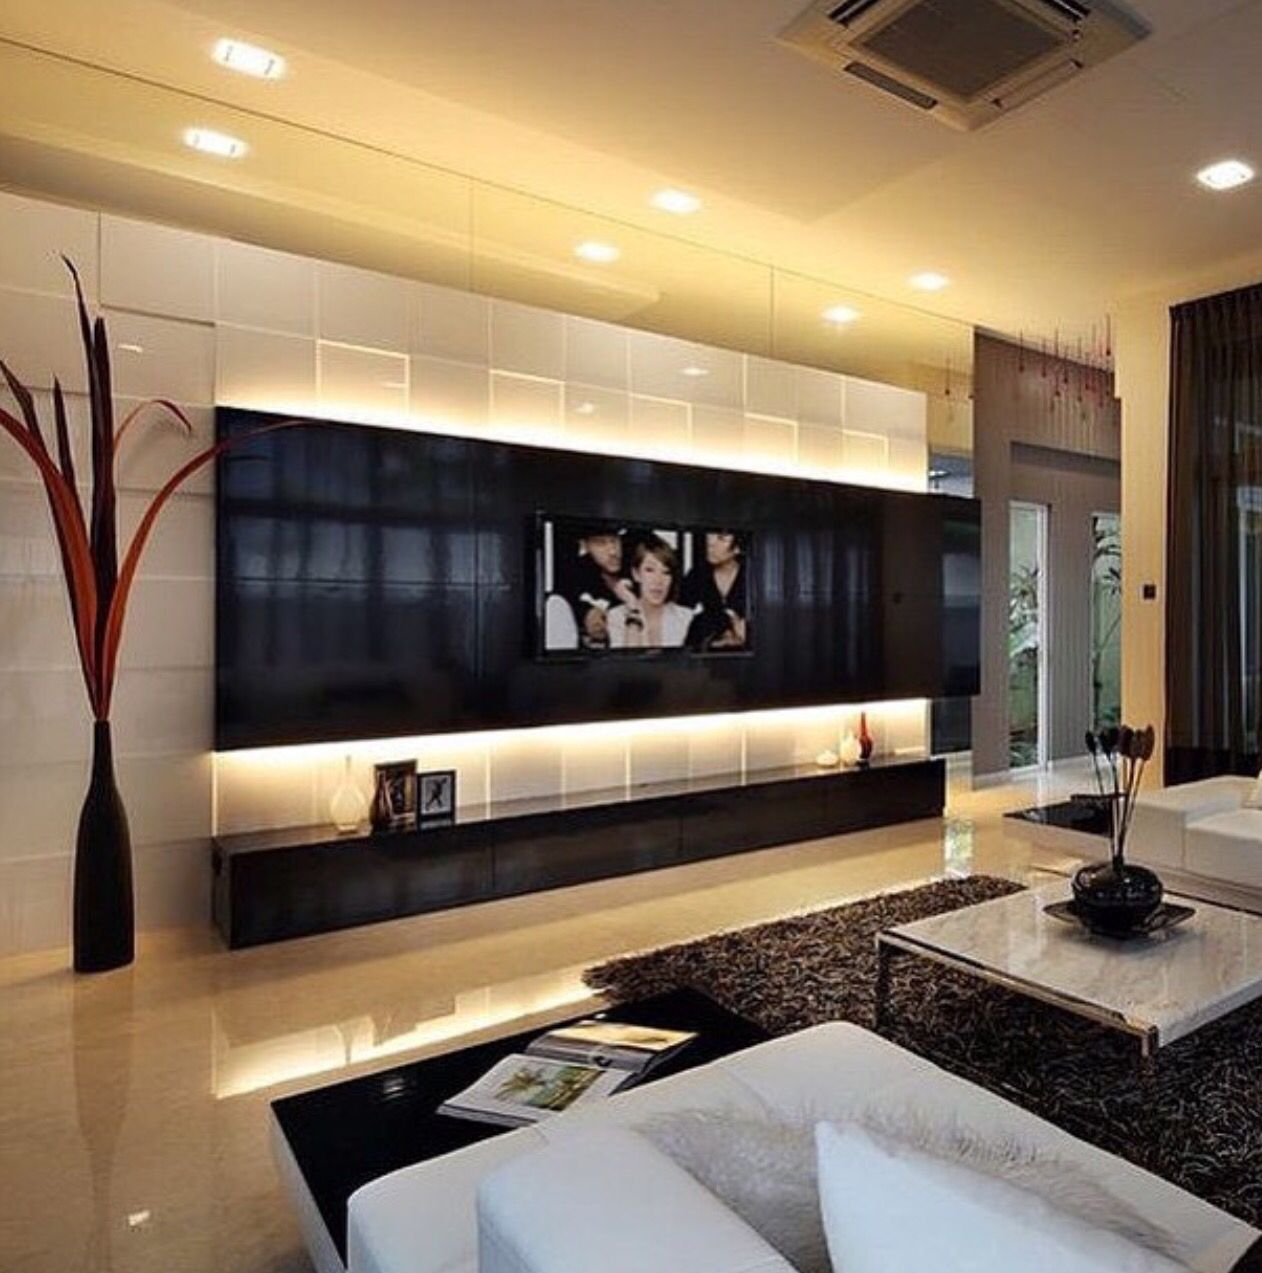 21 Incredible Home Theater Design Ideas Decor Pictures: Decoração Sala De Tv